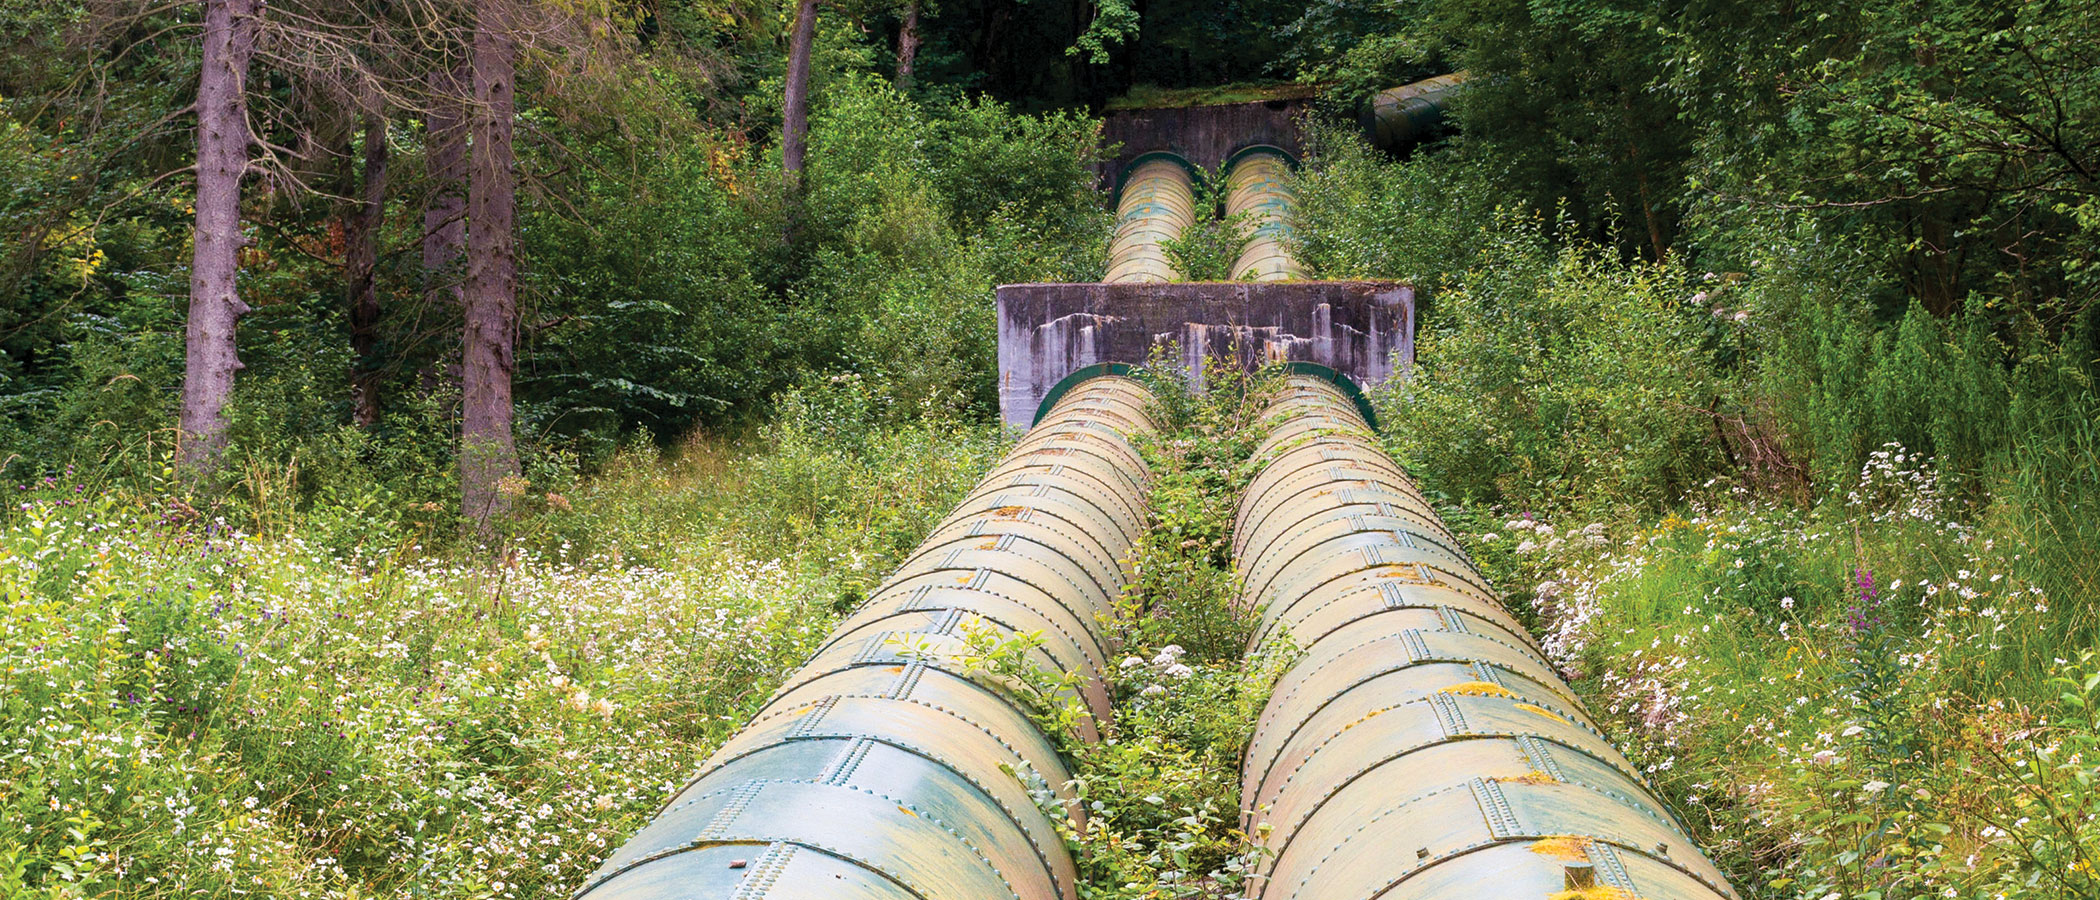 Water distribution pipes running through a lush field of wild flowers.